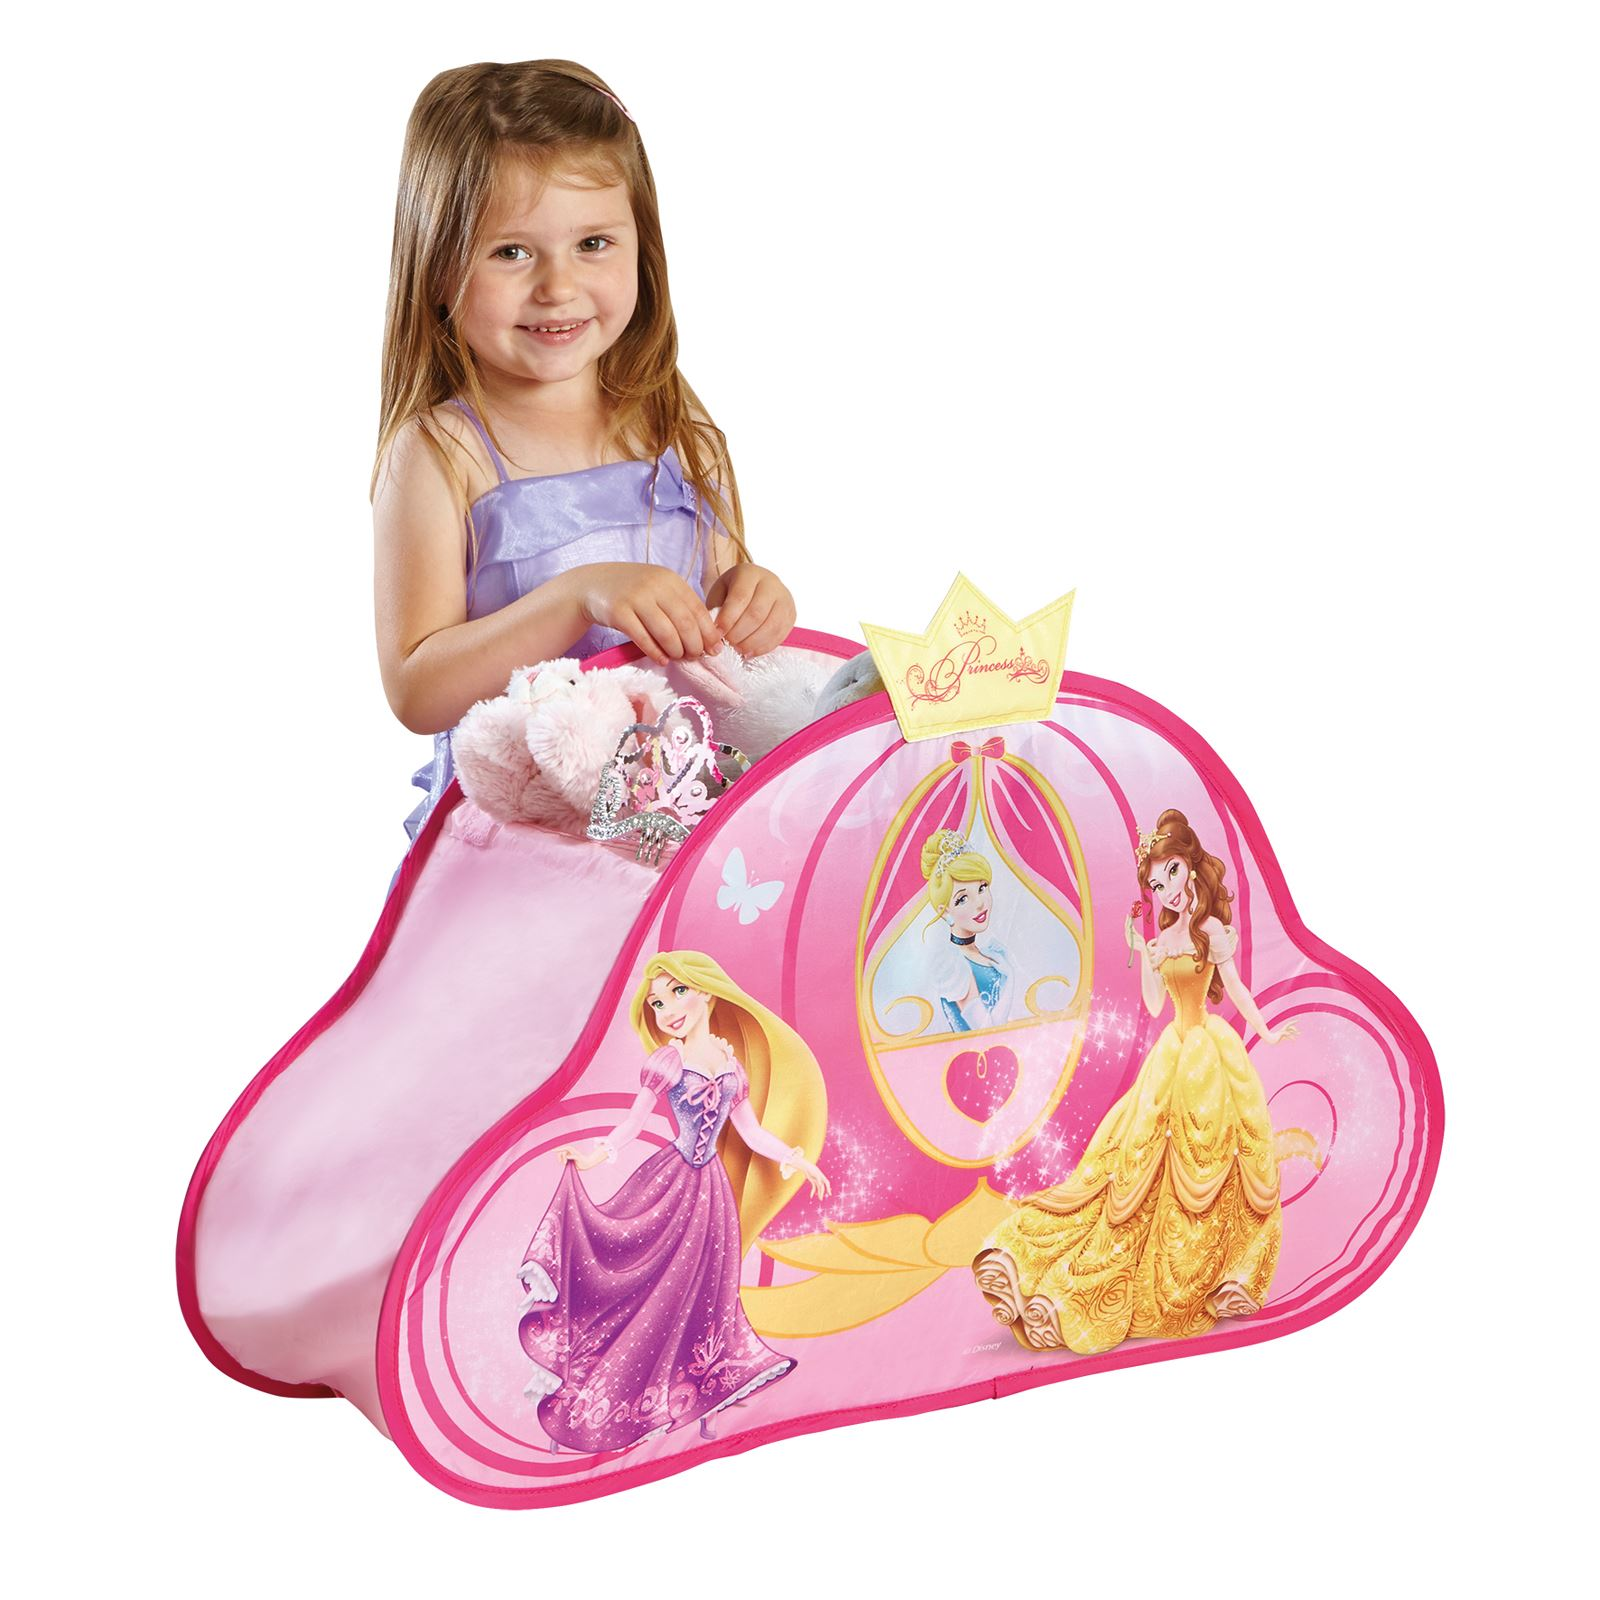 disney princess pop up meuble de rangement 76x53 cm x 25cm jouets pour enfants eur 24 16. Black Bedroom Furniture Sets. Home Design Ideas